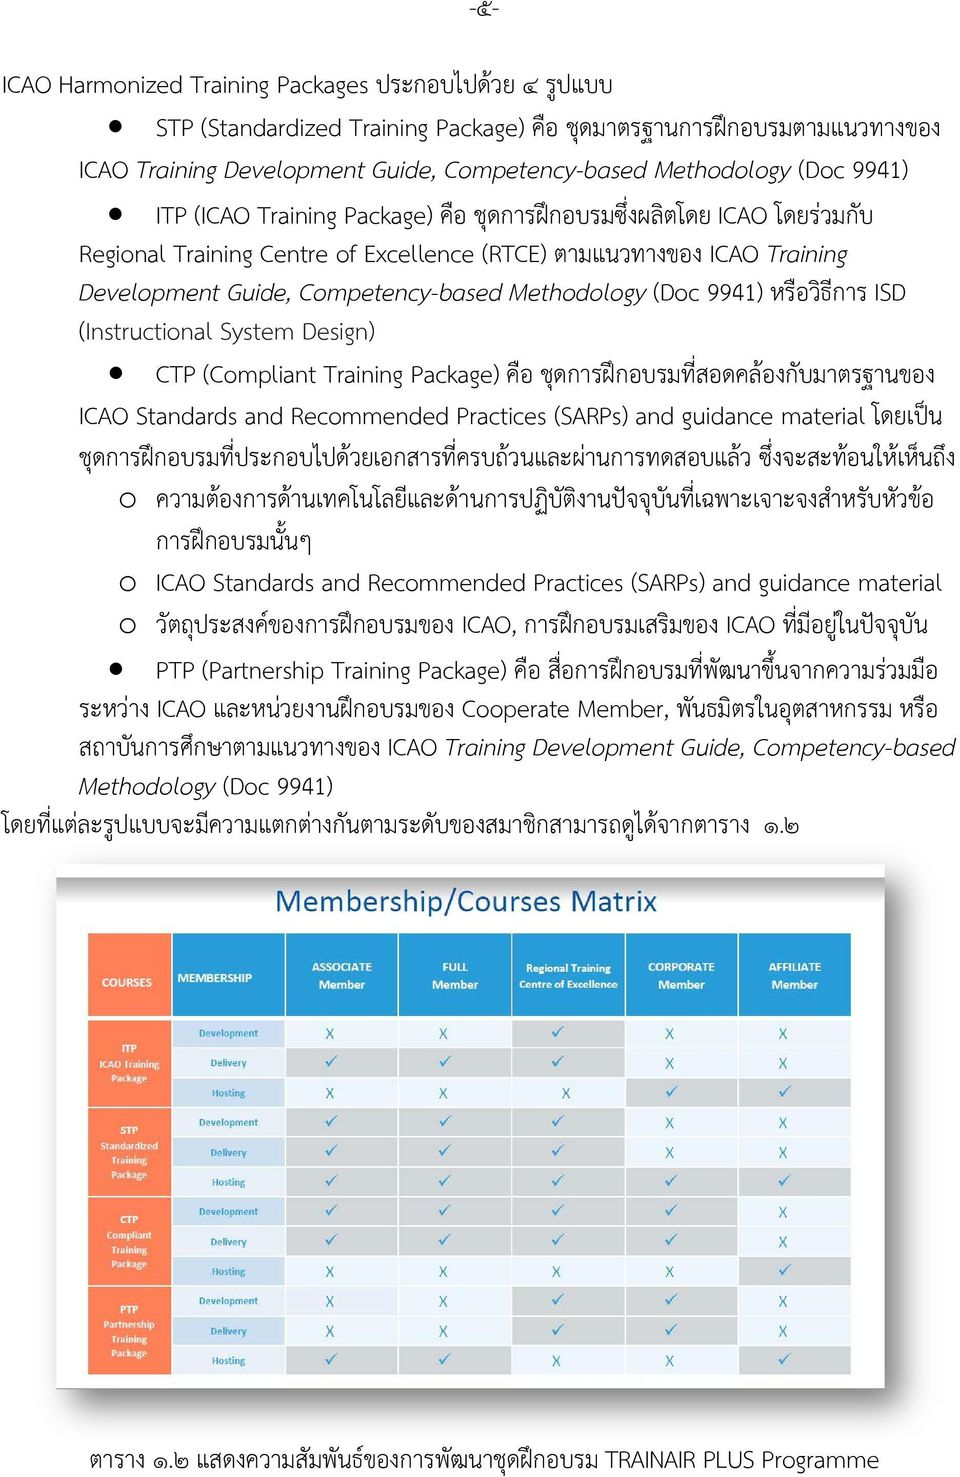 (Doc 9941) หร อว ธ การ ISD (Instructional System Design) CTP (Compliant Training Package) ค อ ช ดการฝ กอบรมท สอดคล องก บมาตรฐานของ ICAO Standards and Recommended Practices (SARPs) and guidance